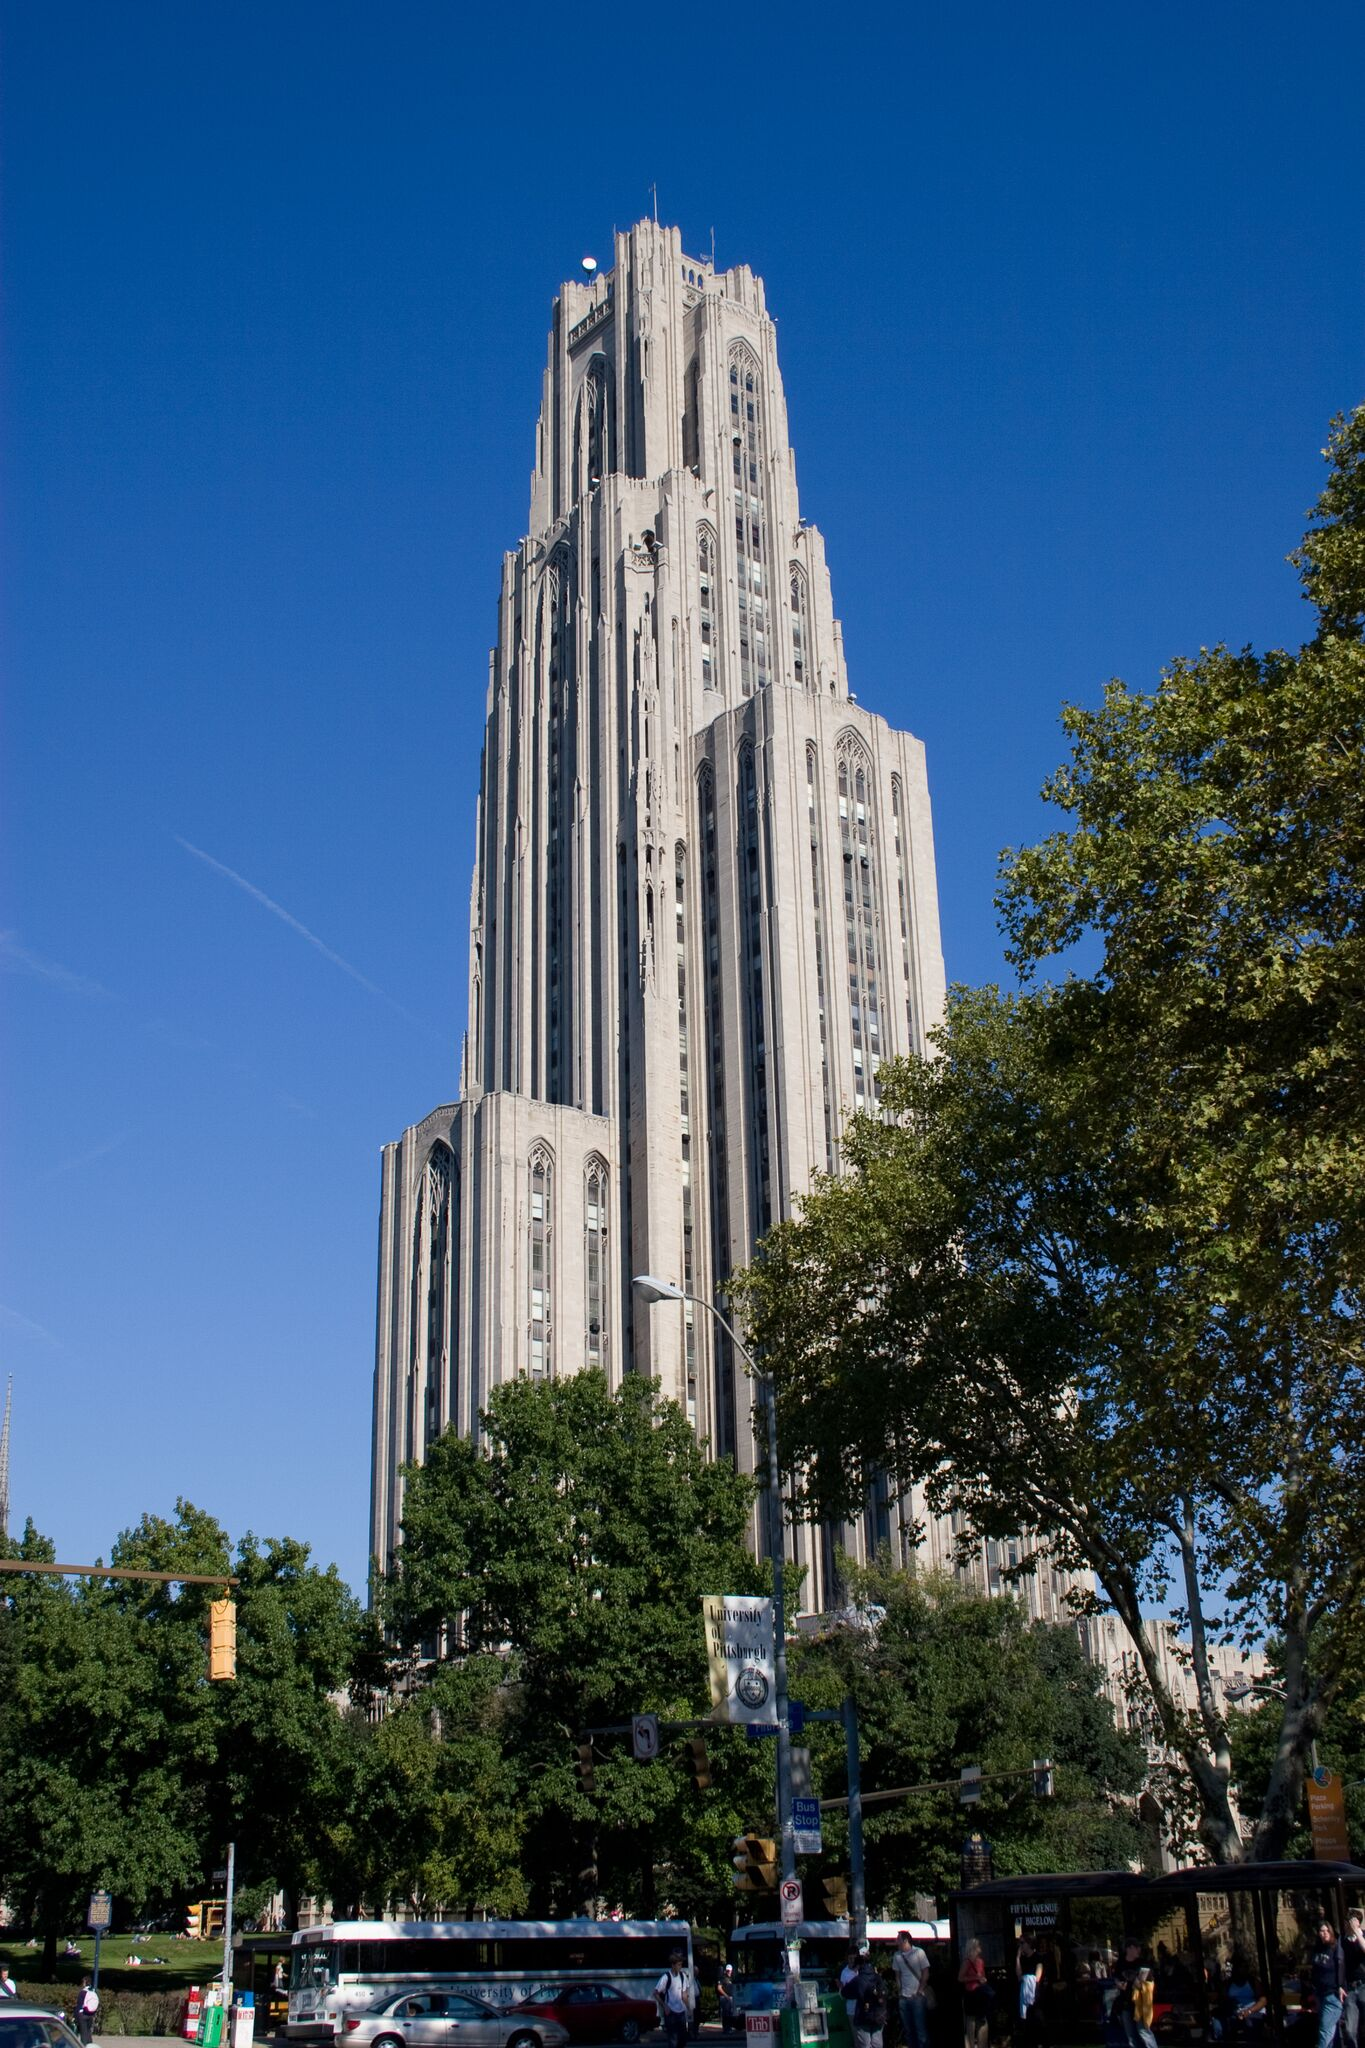 Cathedral of Learning, Oakland. Pittsburgh, PA. Photo taken by Dr. Neal Ryan.